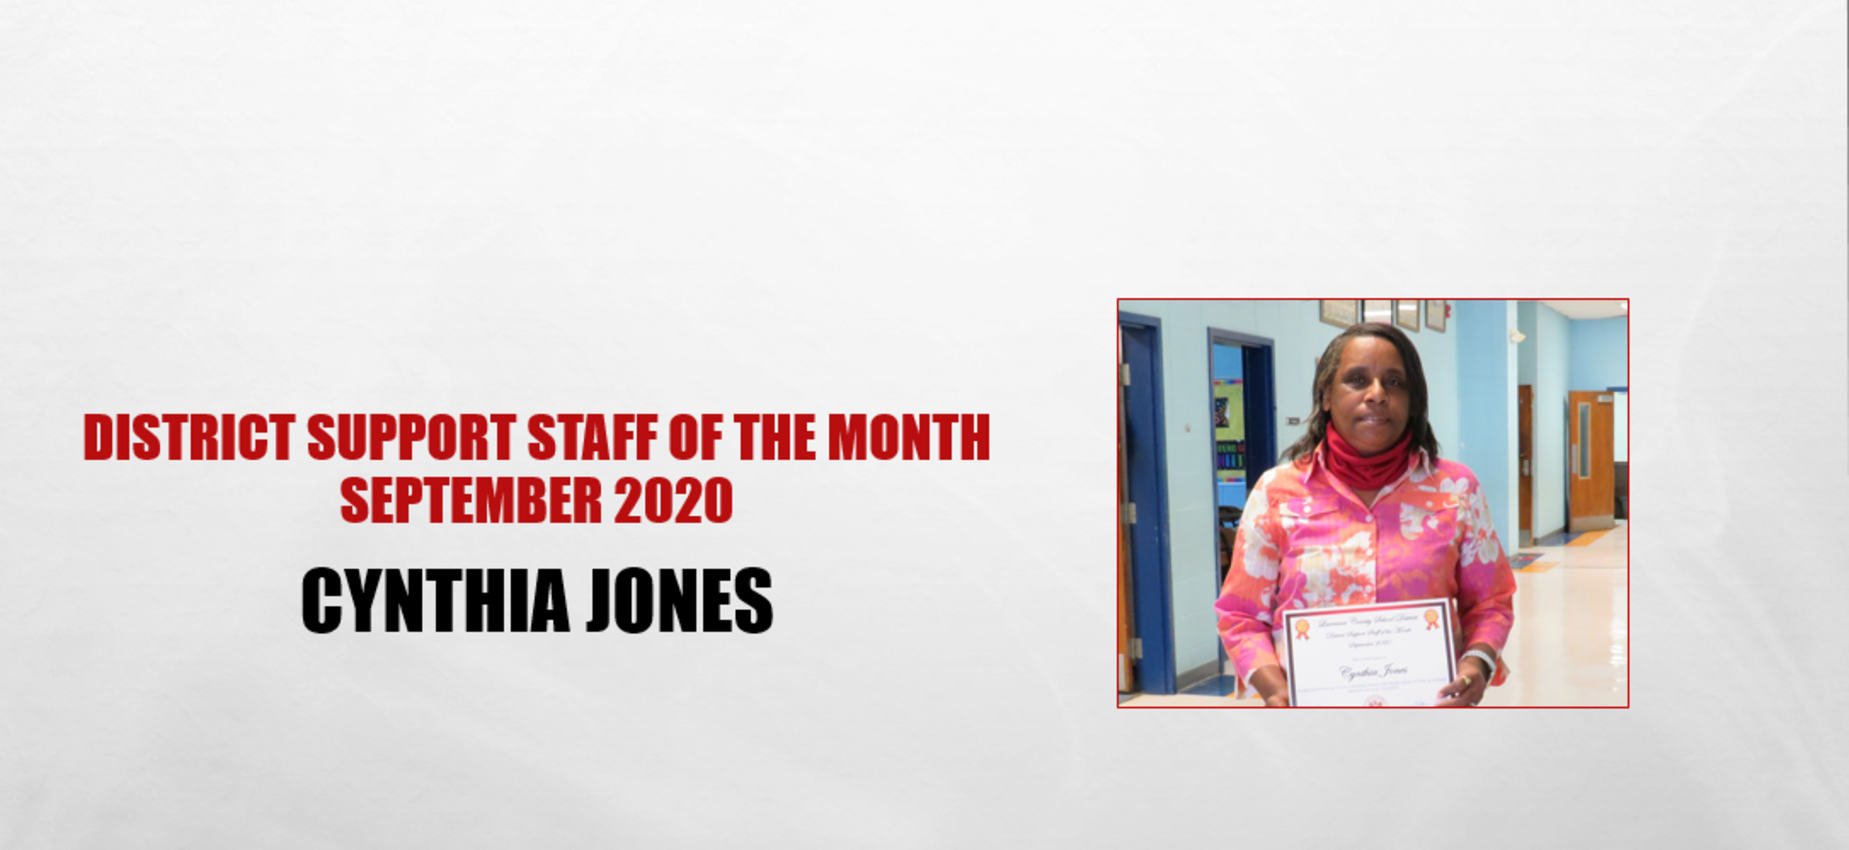 Cynthia Jones Support Staff of the Month September 2020